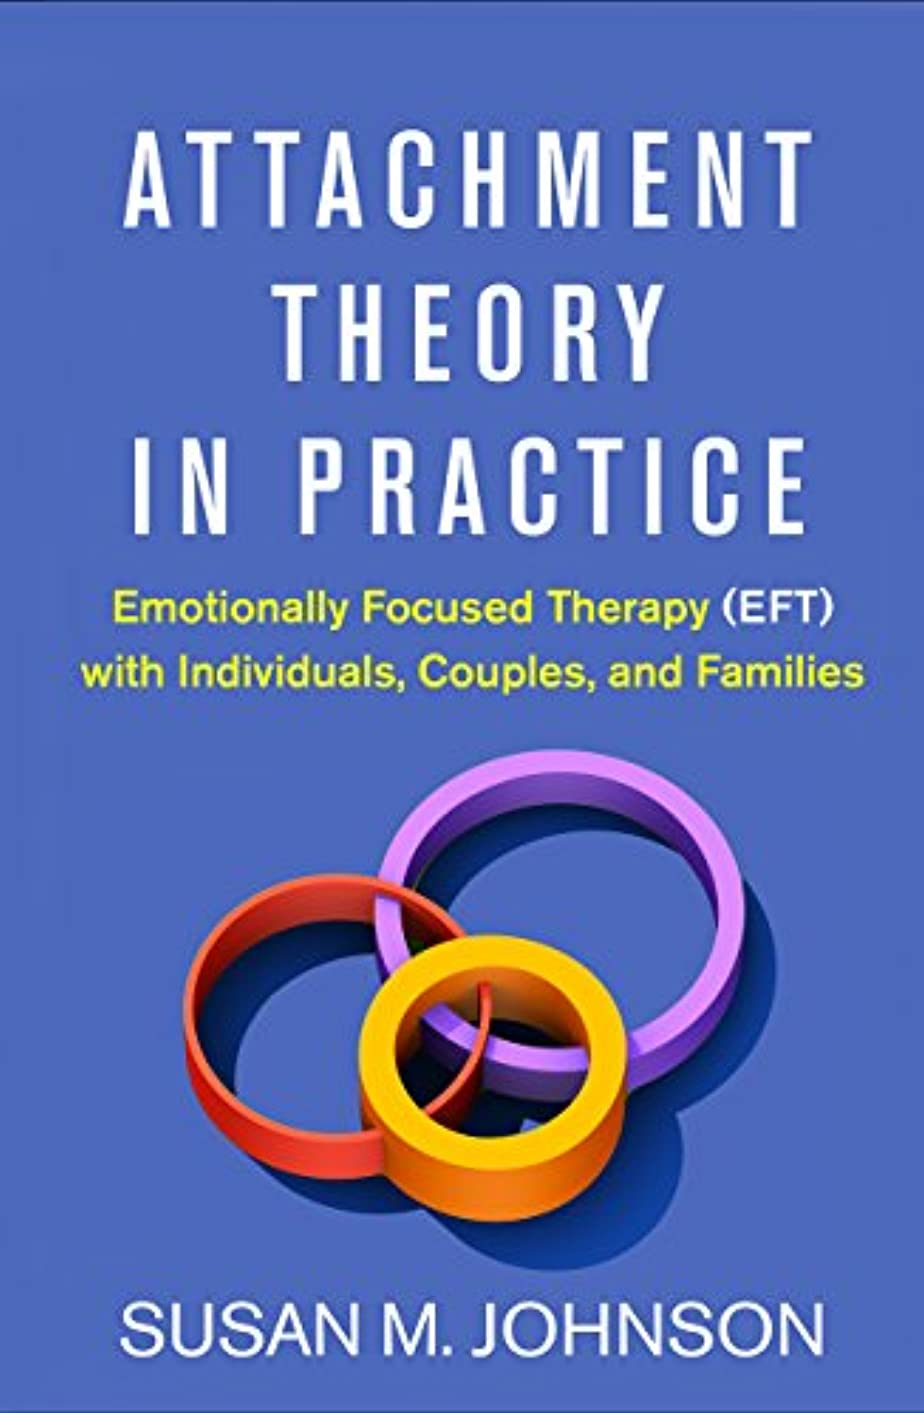 無意識アニメーション肺Attachment Theory in Practice: Emotionally Focused Therapy (EFT) with Individuals, Couples, and Families